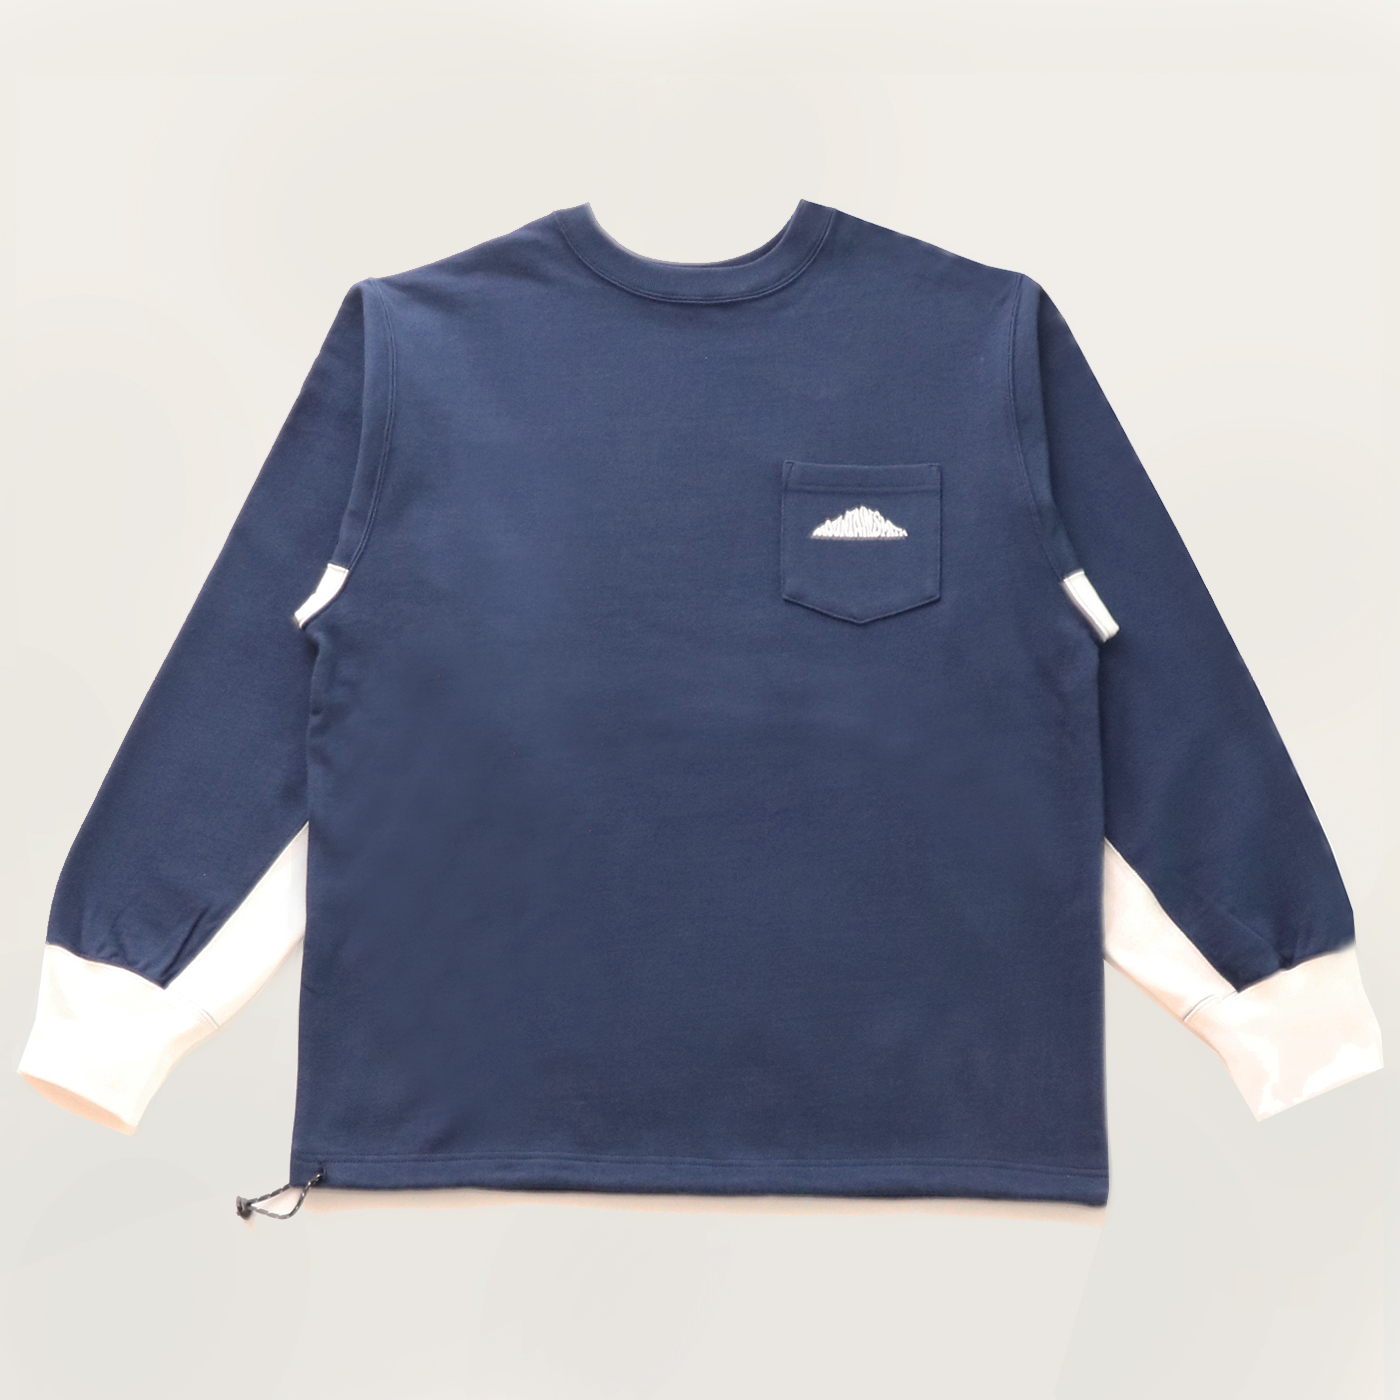 product: Granby Recycled Crew / color: NAVY 1